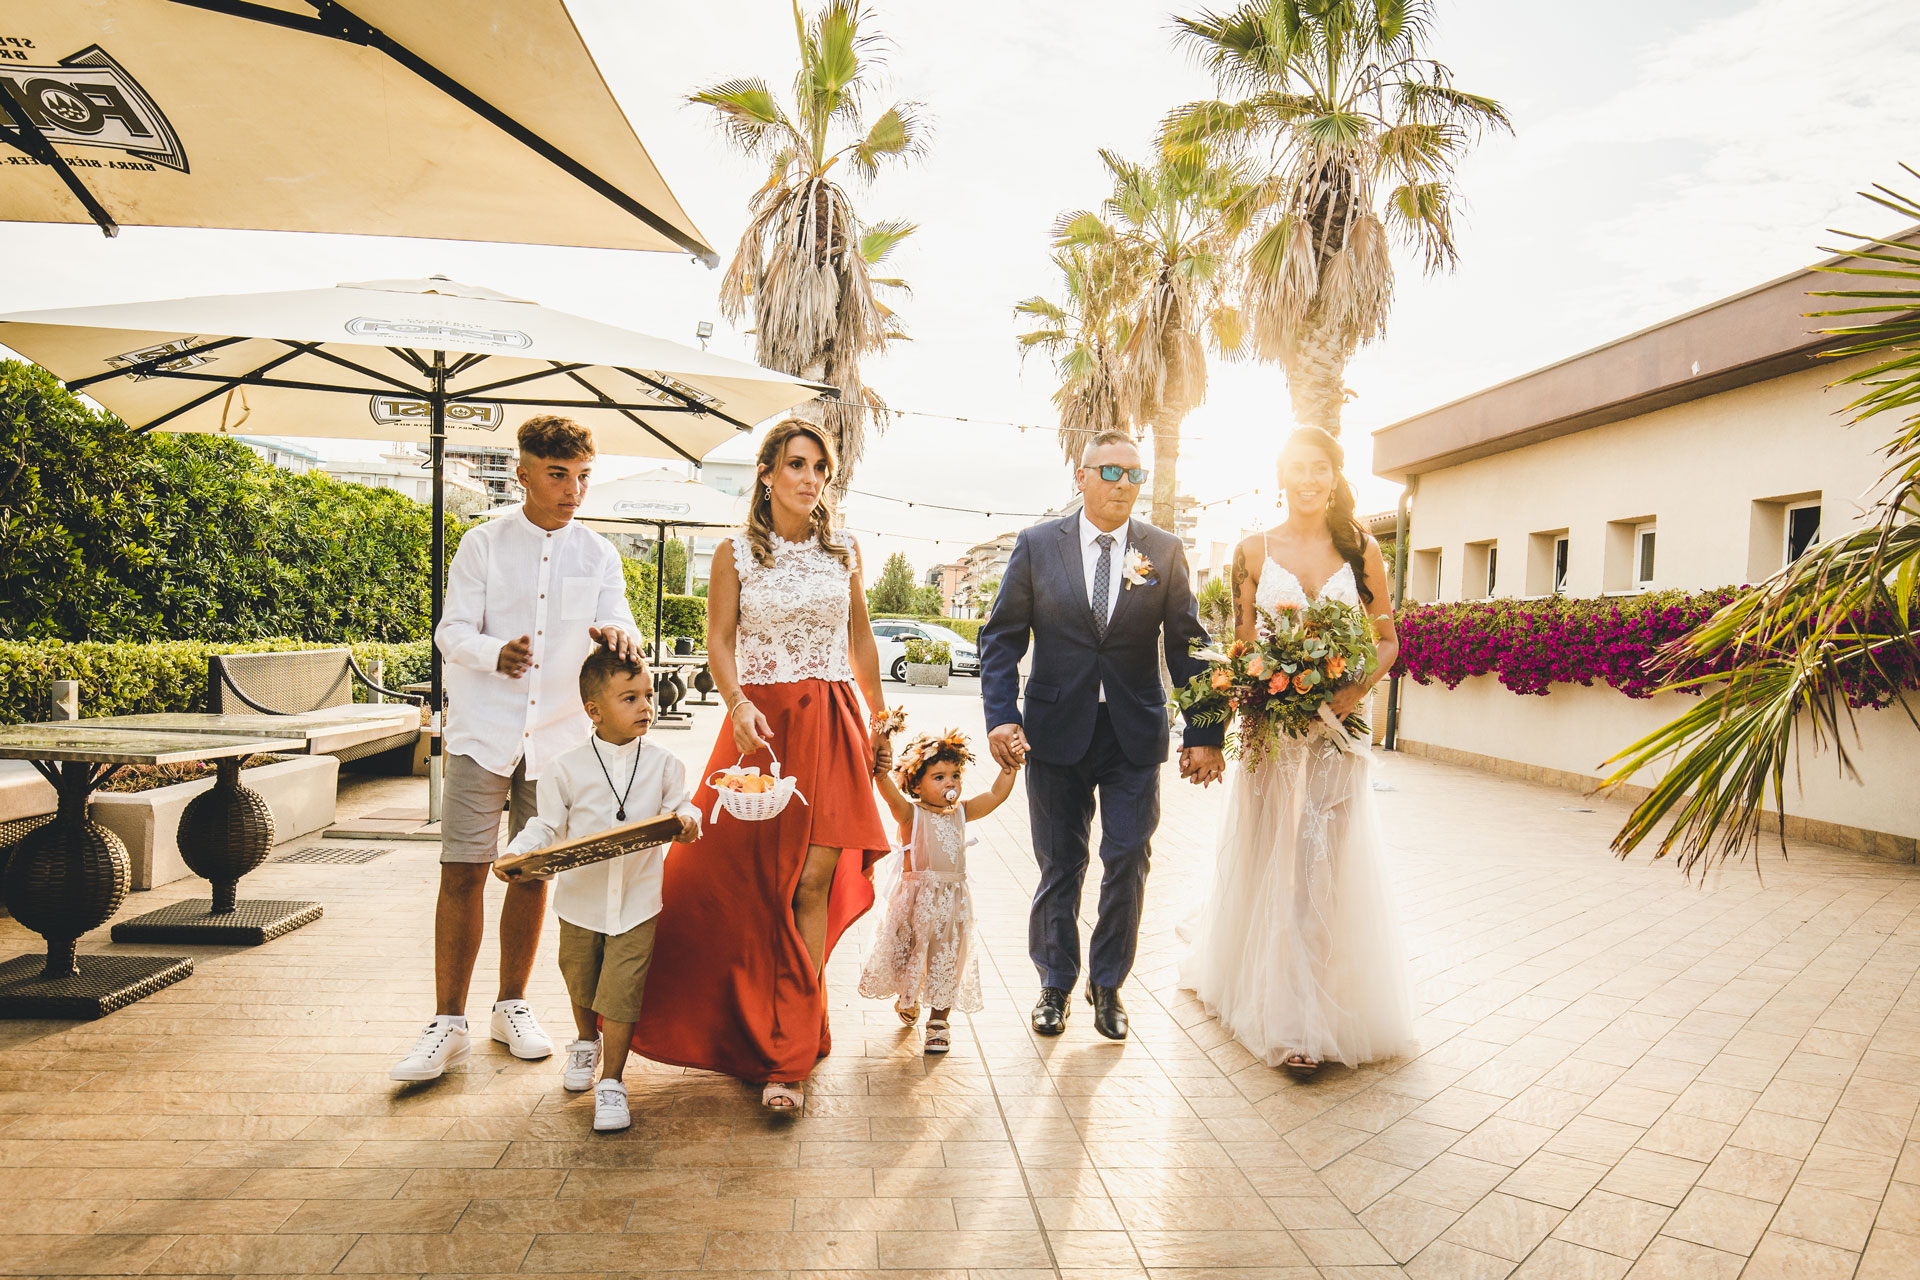 Wedding Photographer Venice, Italy in Chioggia | The bride clasps hands with her entire family